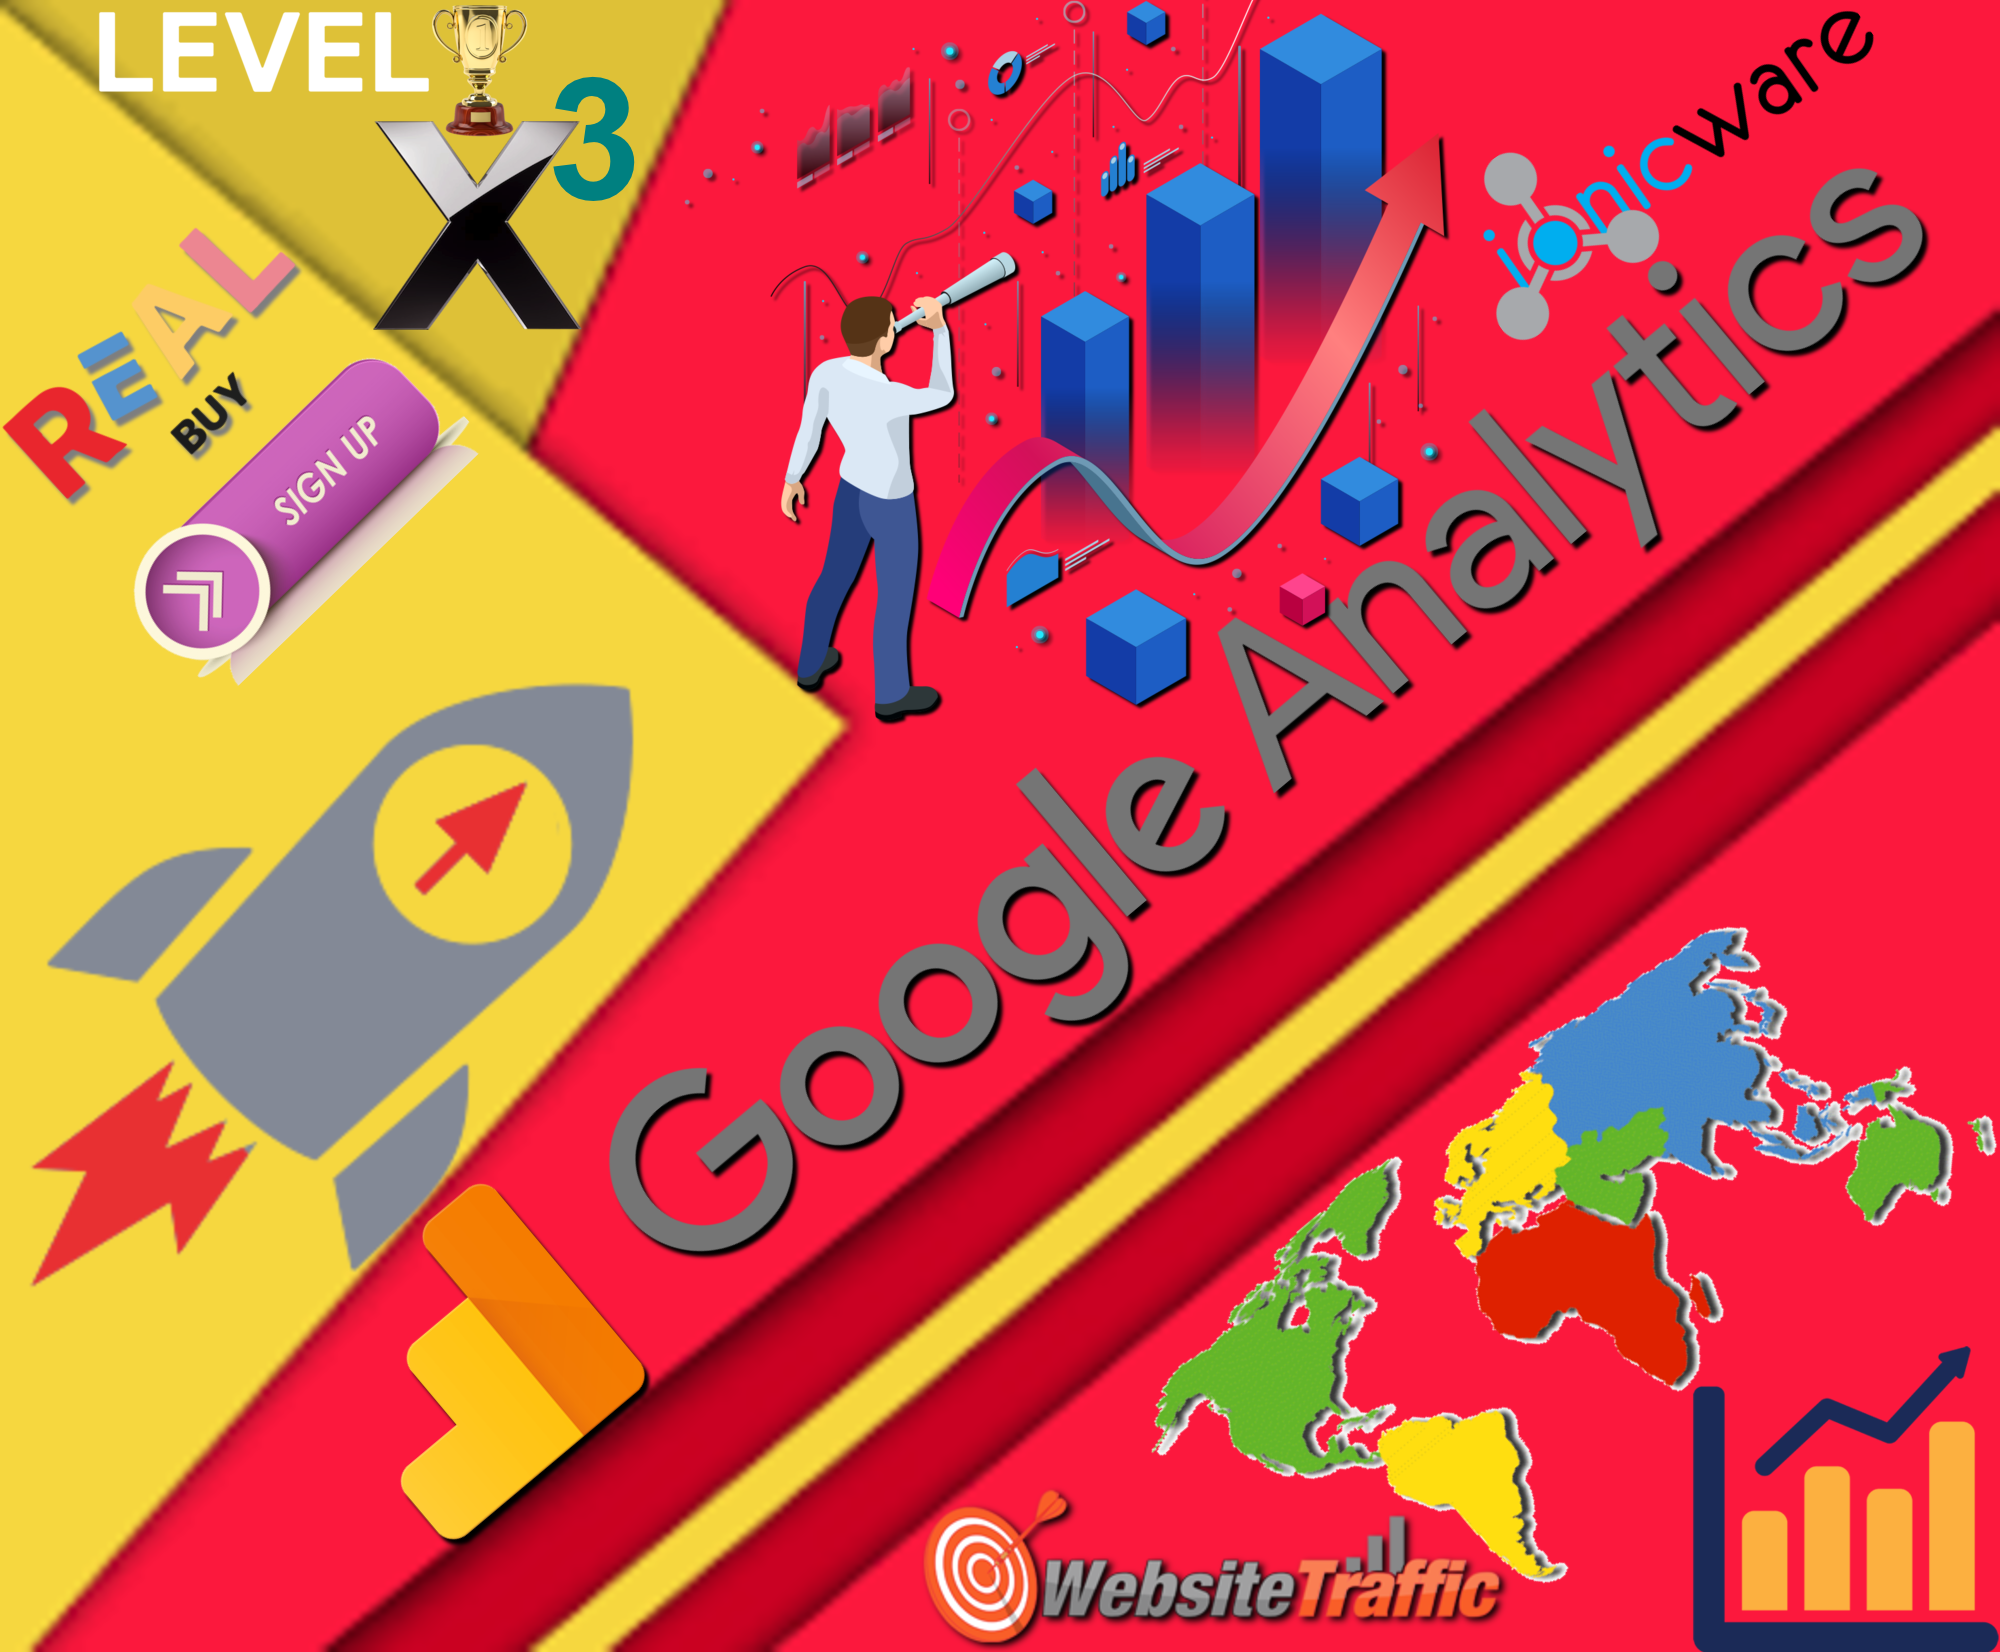 35,000 Worldwide USA Target Countries Google Analytics Website Traffic Visitors - 35 Referral CPA Affiliate Sign ups